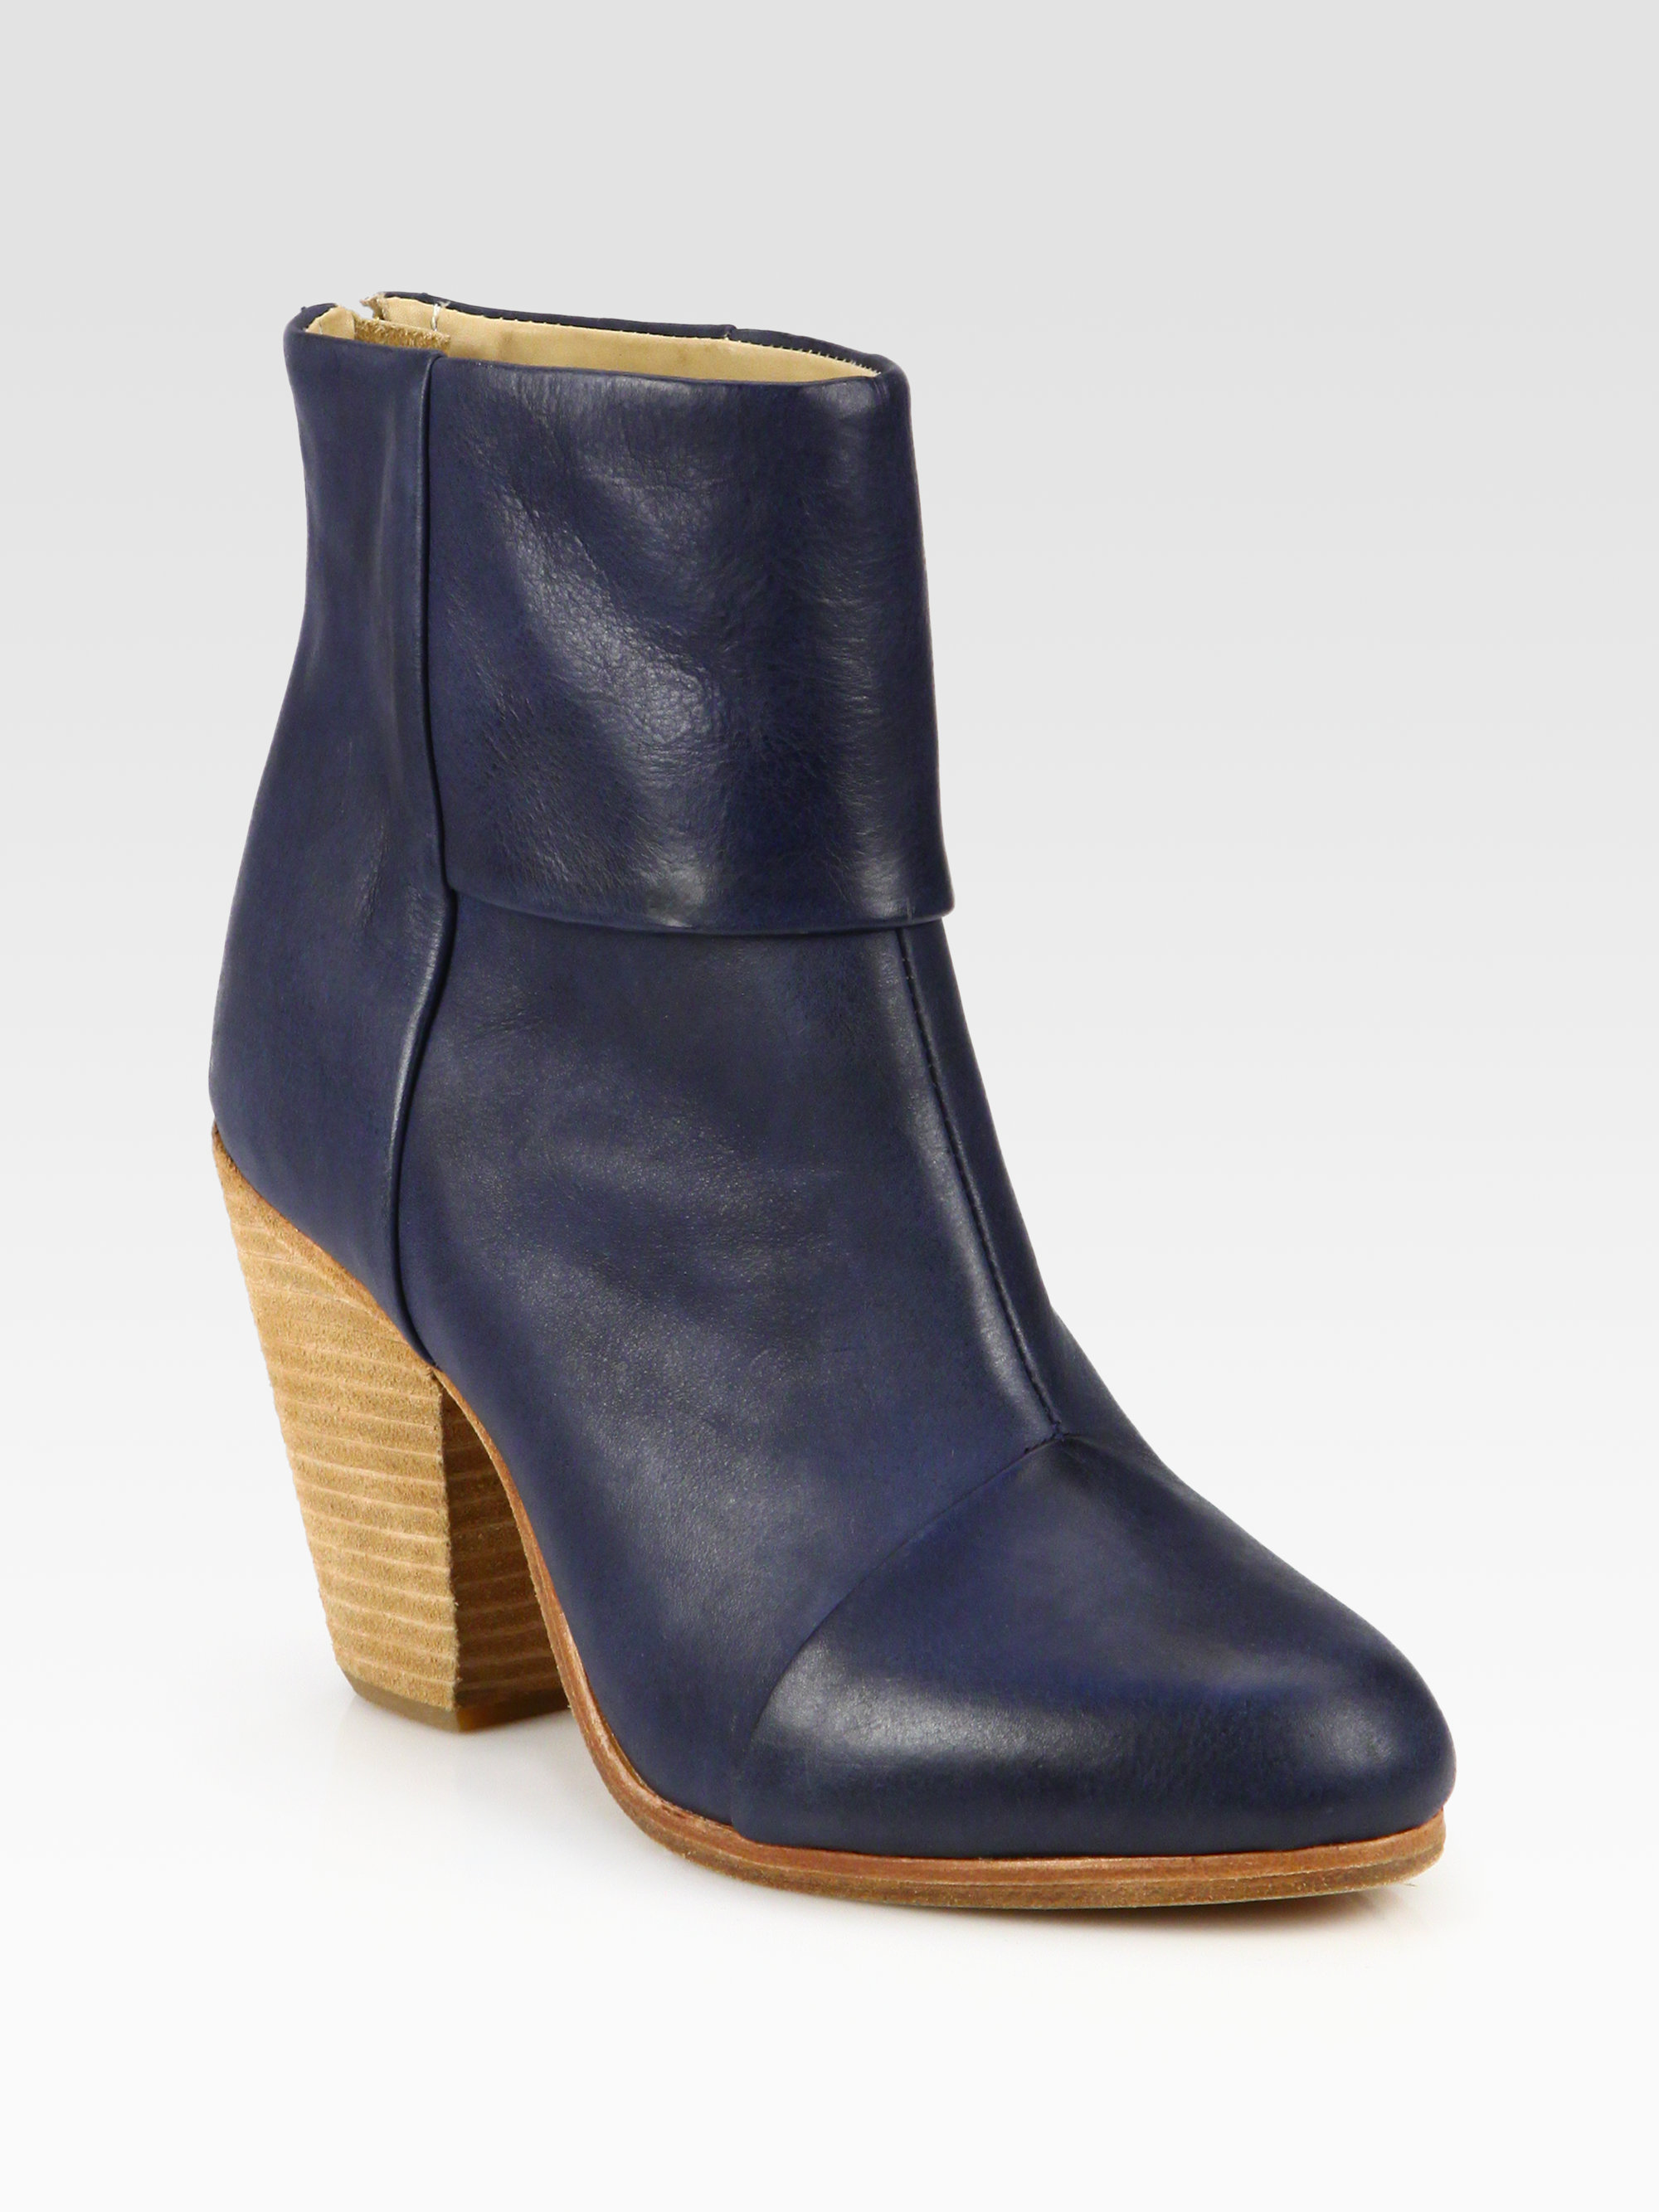 Rag & bone Classic Newbury Leather Ankle Boots in Blue | Lyst